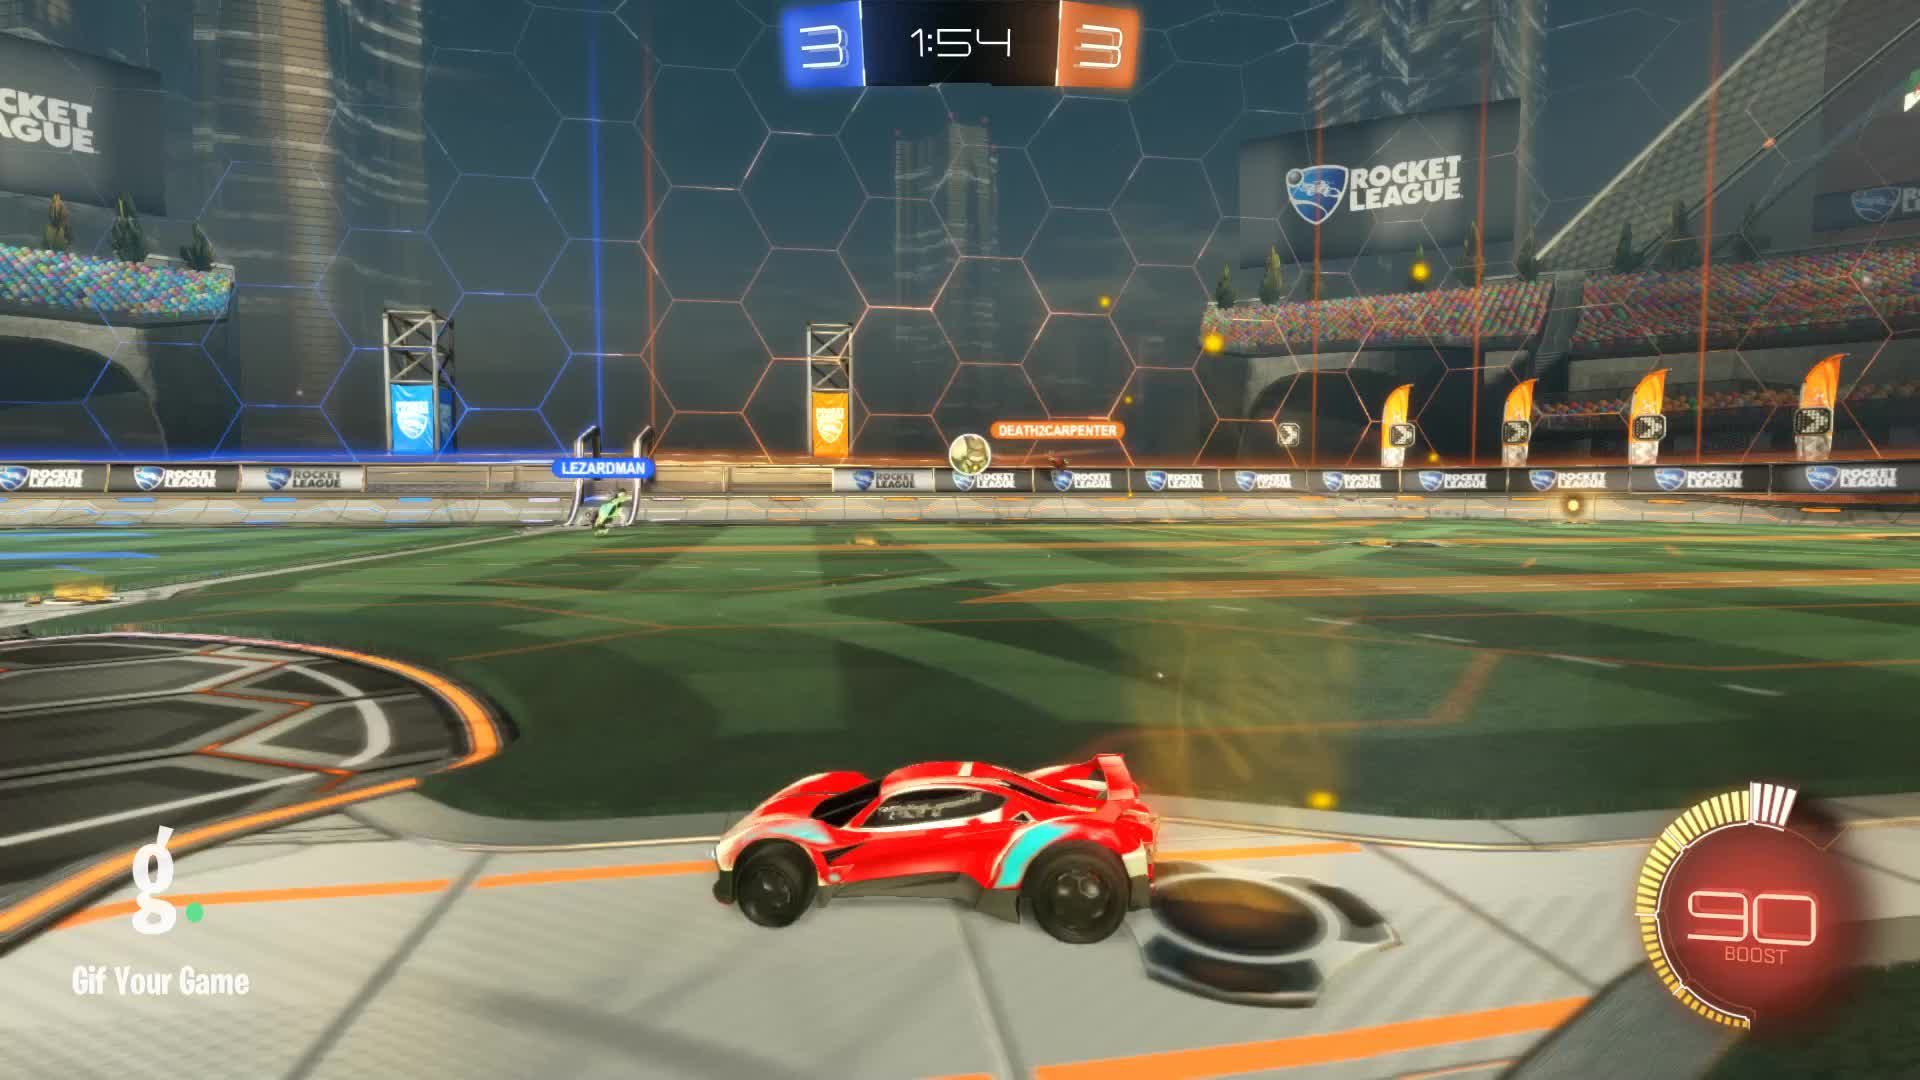 Gif Your Game, GifYourGame, Goal, Litro, Rocket League, RocketLeague, Goal 7: Litro GIFs